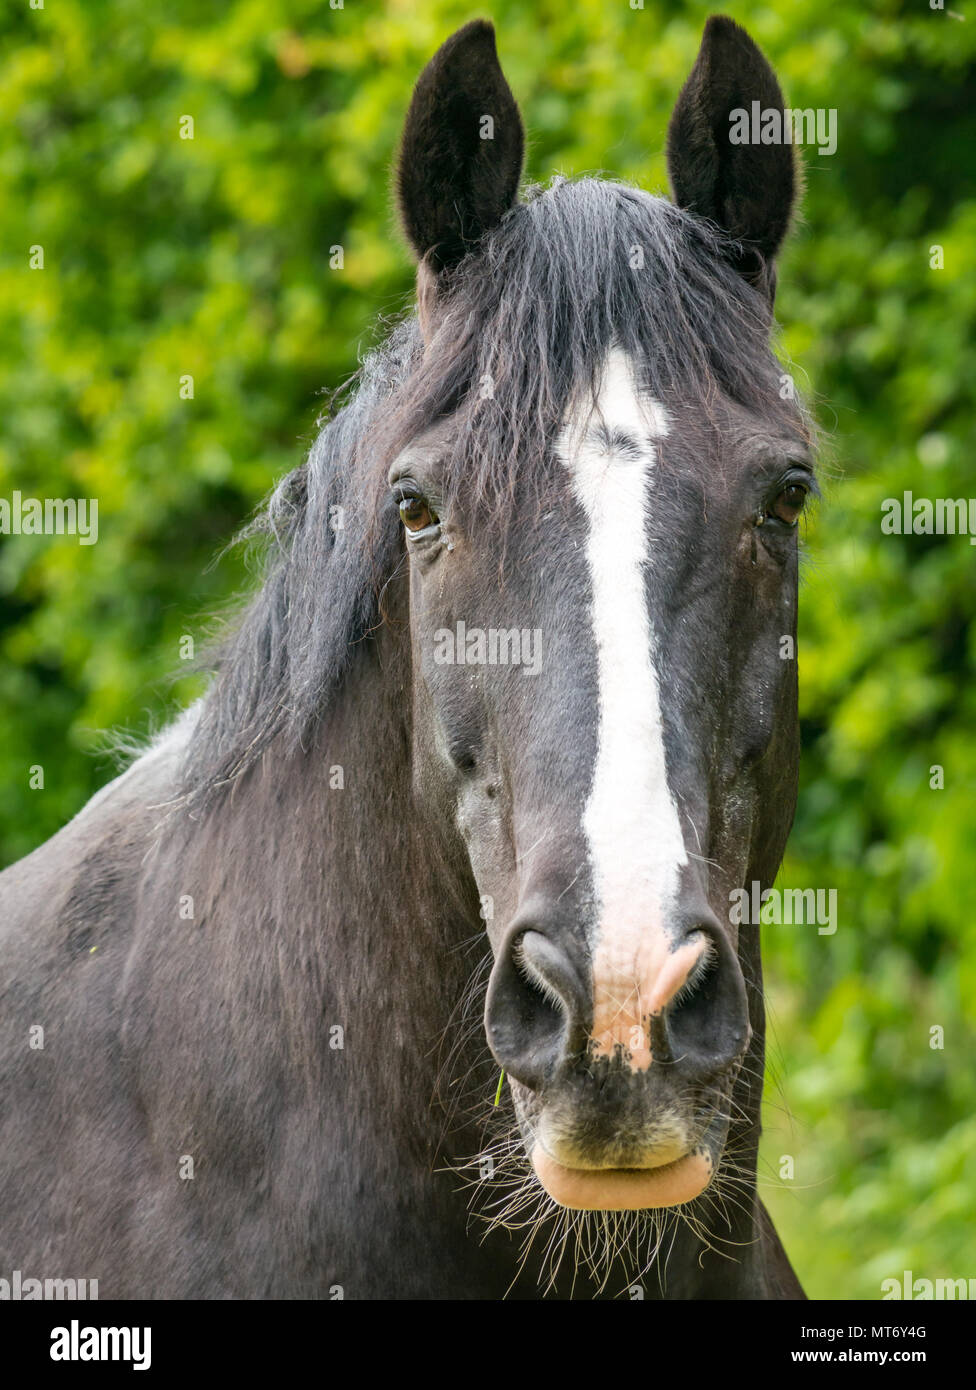 Close Up Of Watchful Black Horse Head With White Blaze Against Blurred Green Foliage Background Stock Photo Alamy